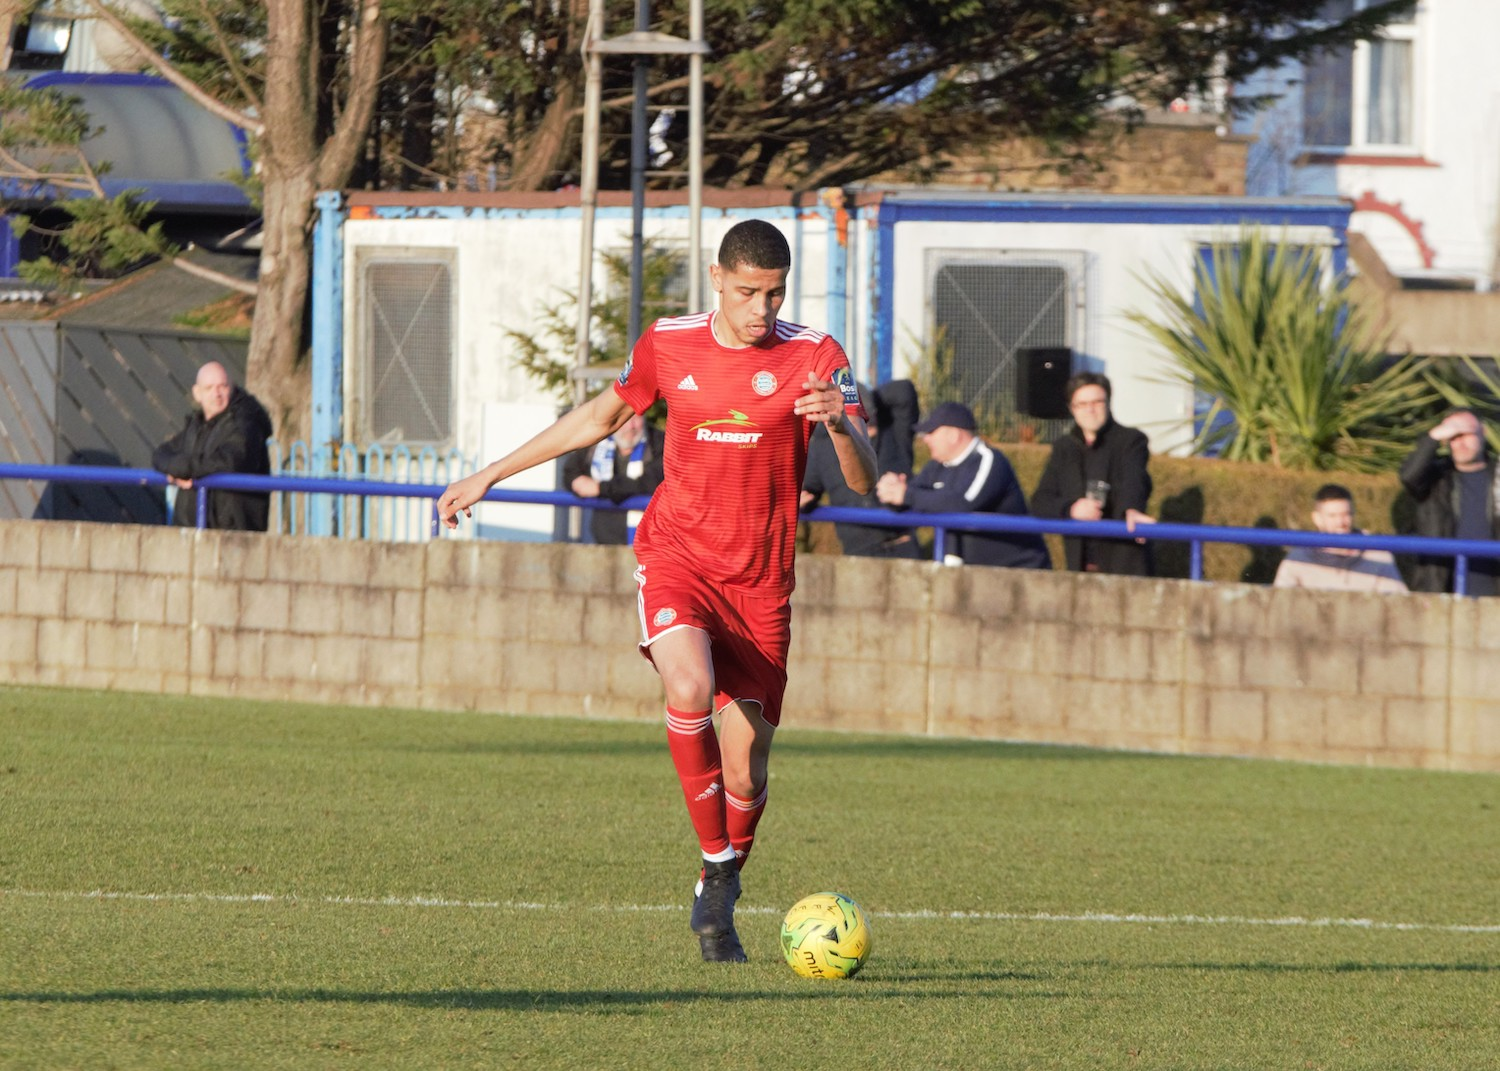 Read the full article - Gallery: Wingate & Finchley [A] – League